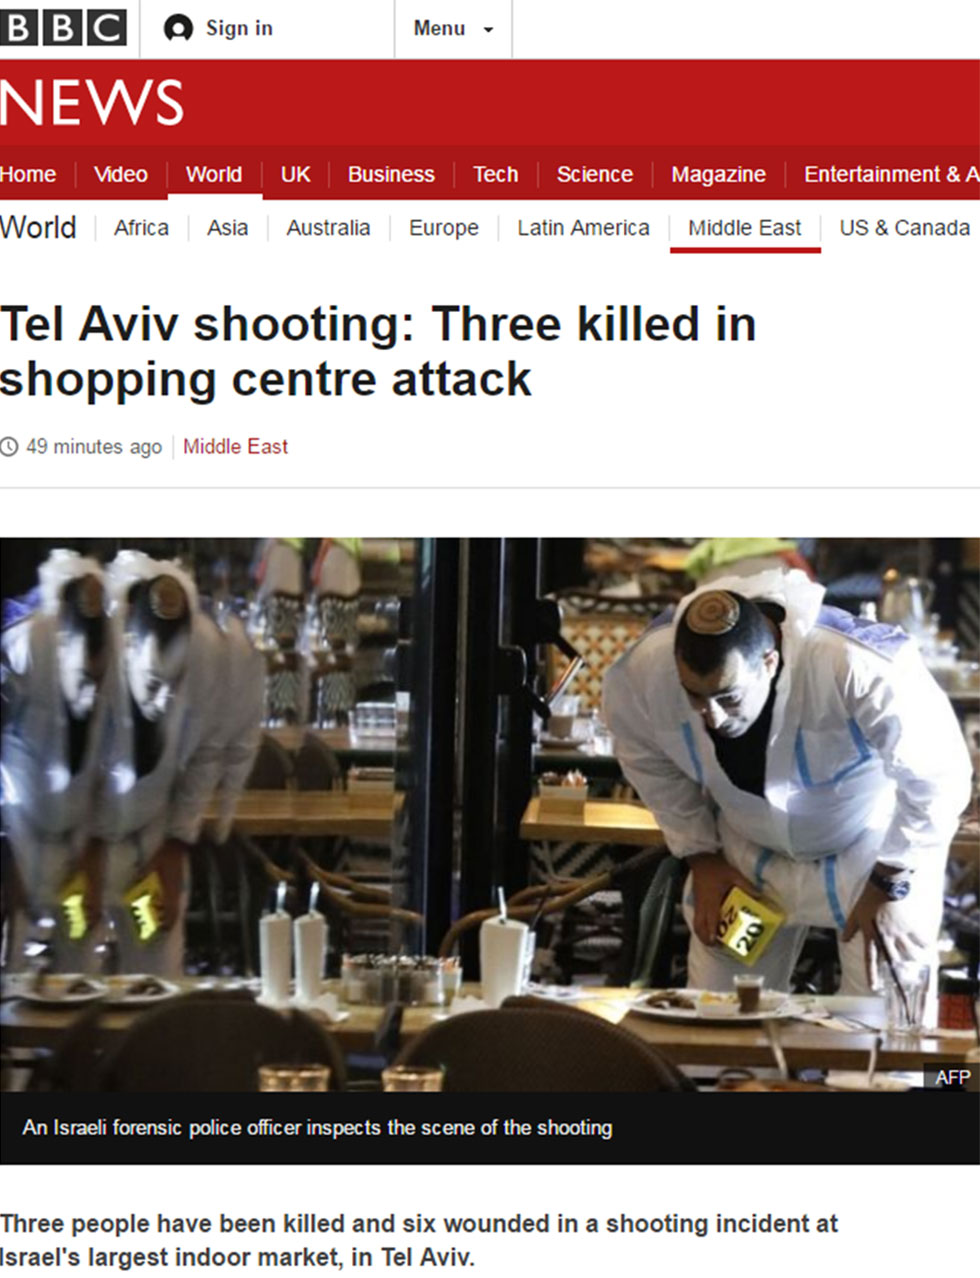 BBC coverage of Tel Aviv terror attack